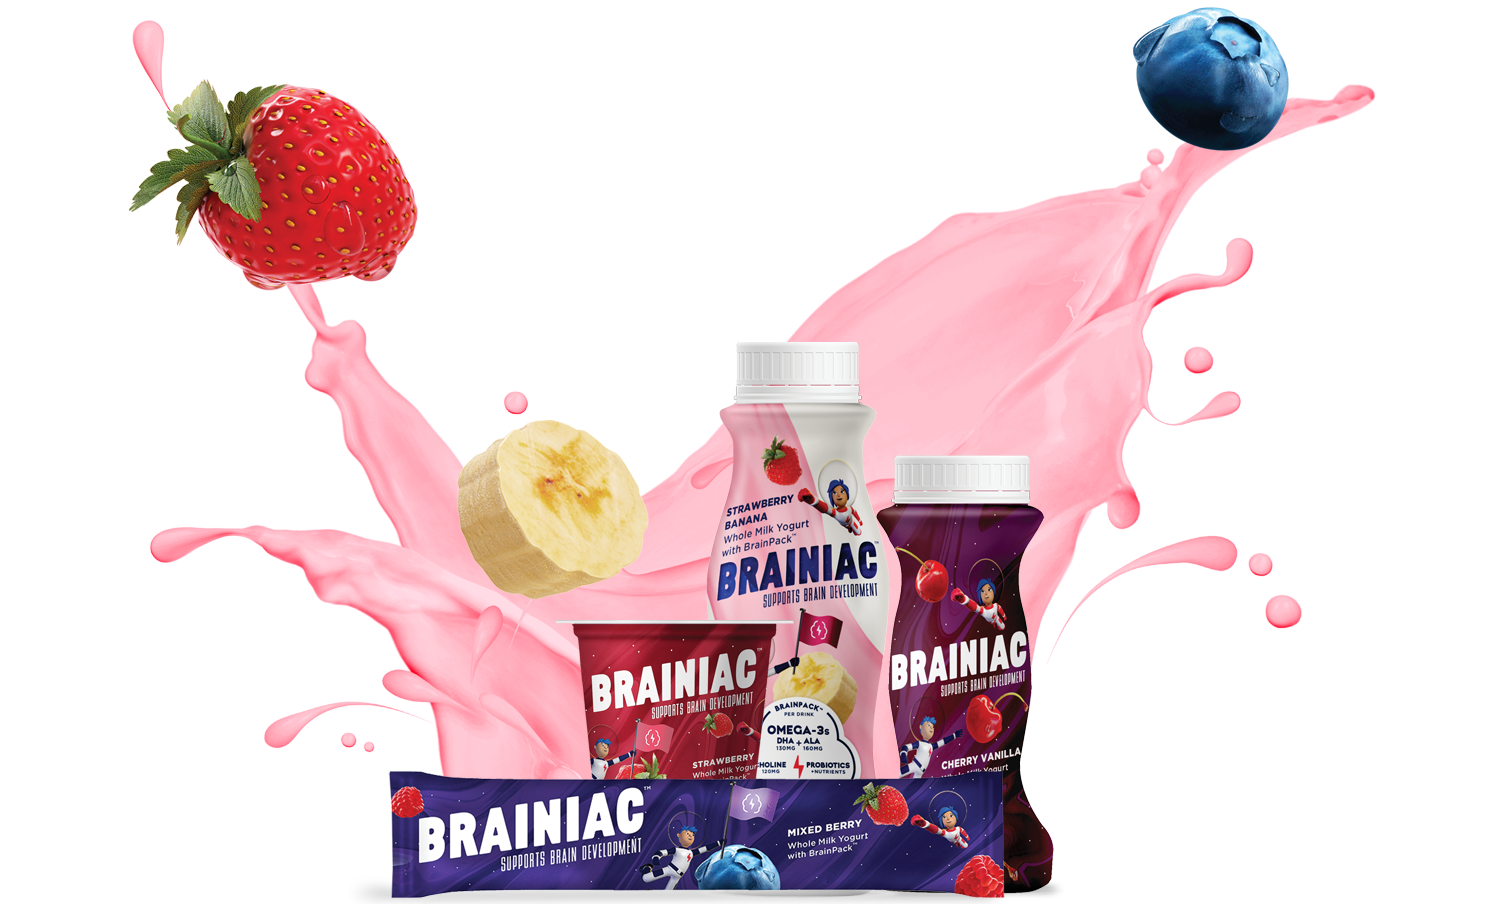 Brainiac yogurt packaging in front of pink yogurt splash with a strawberry, blueberry, and banana